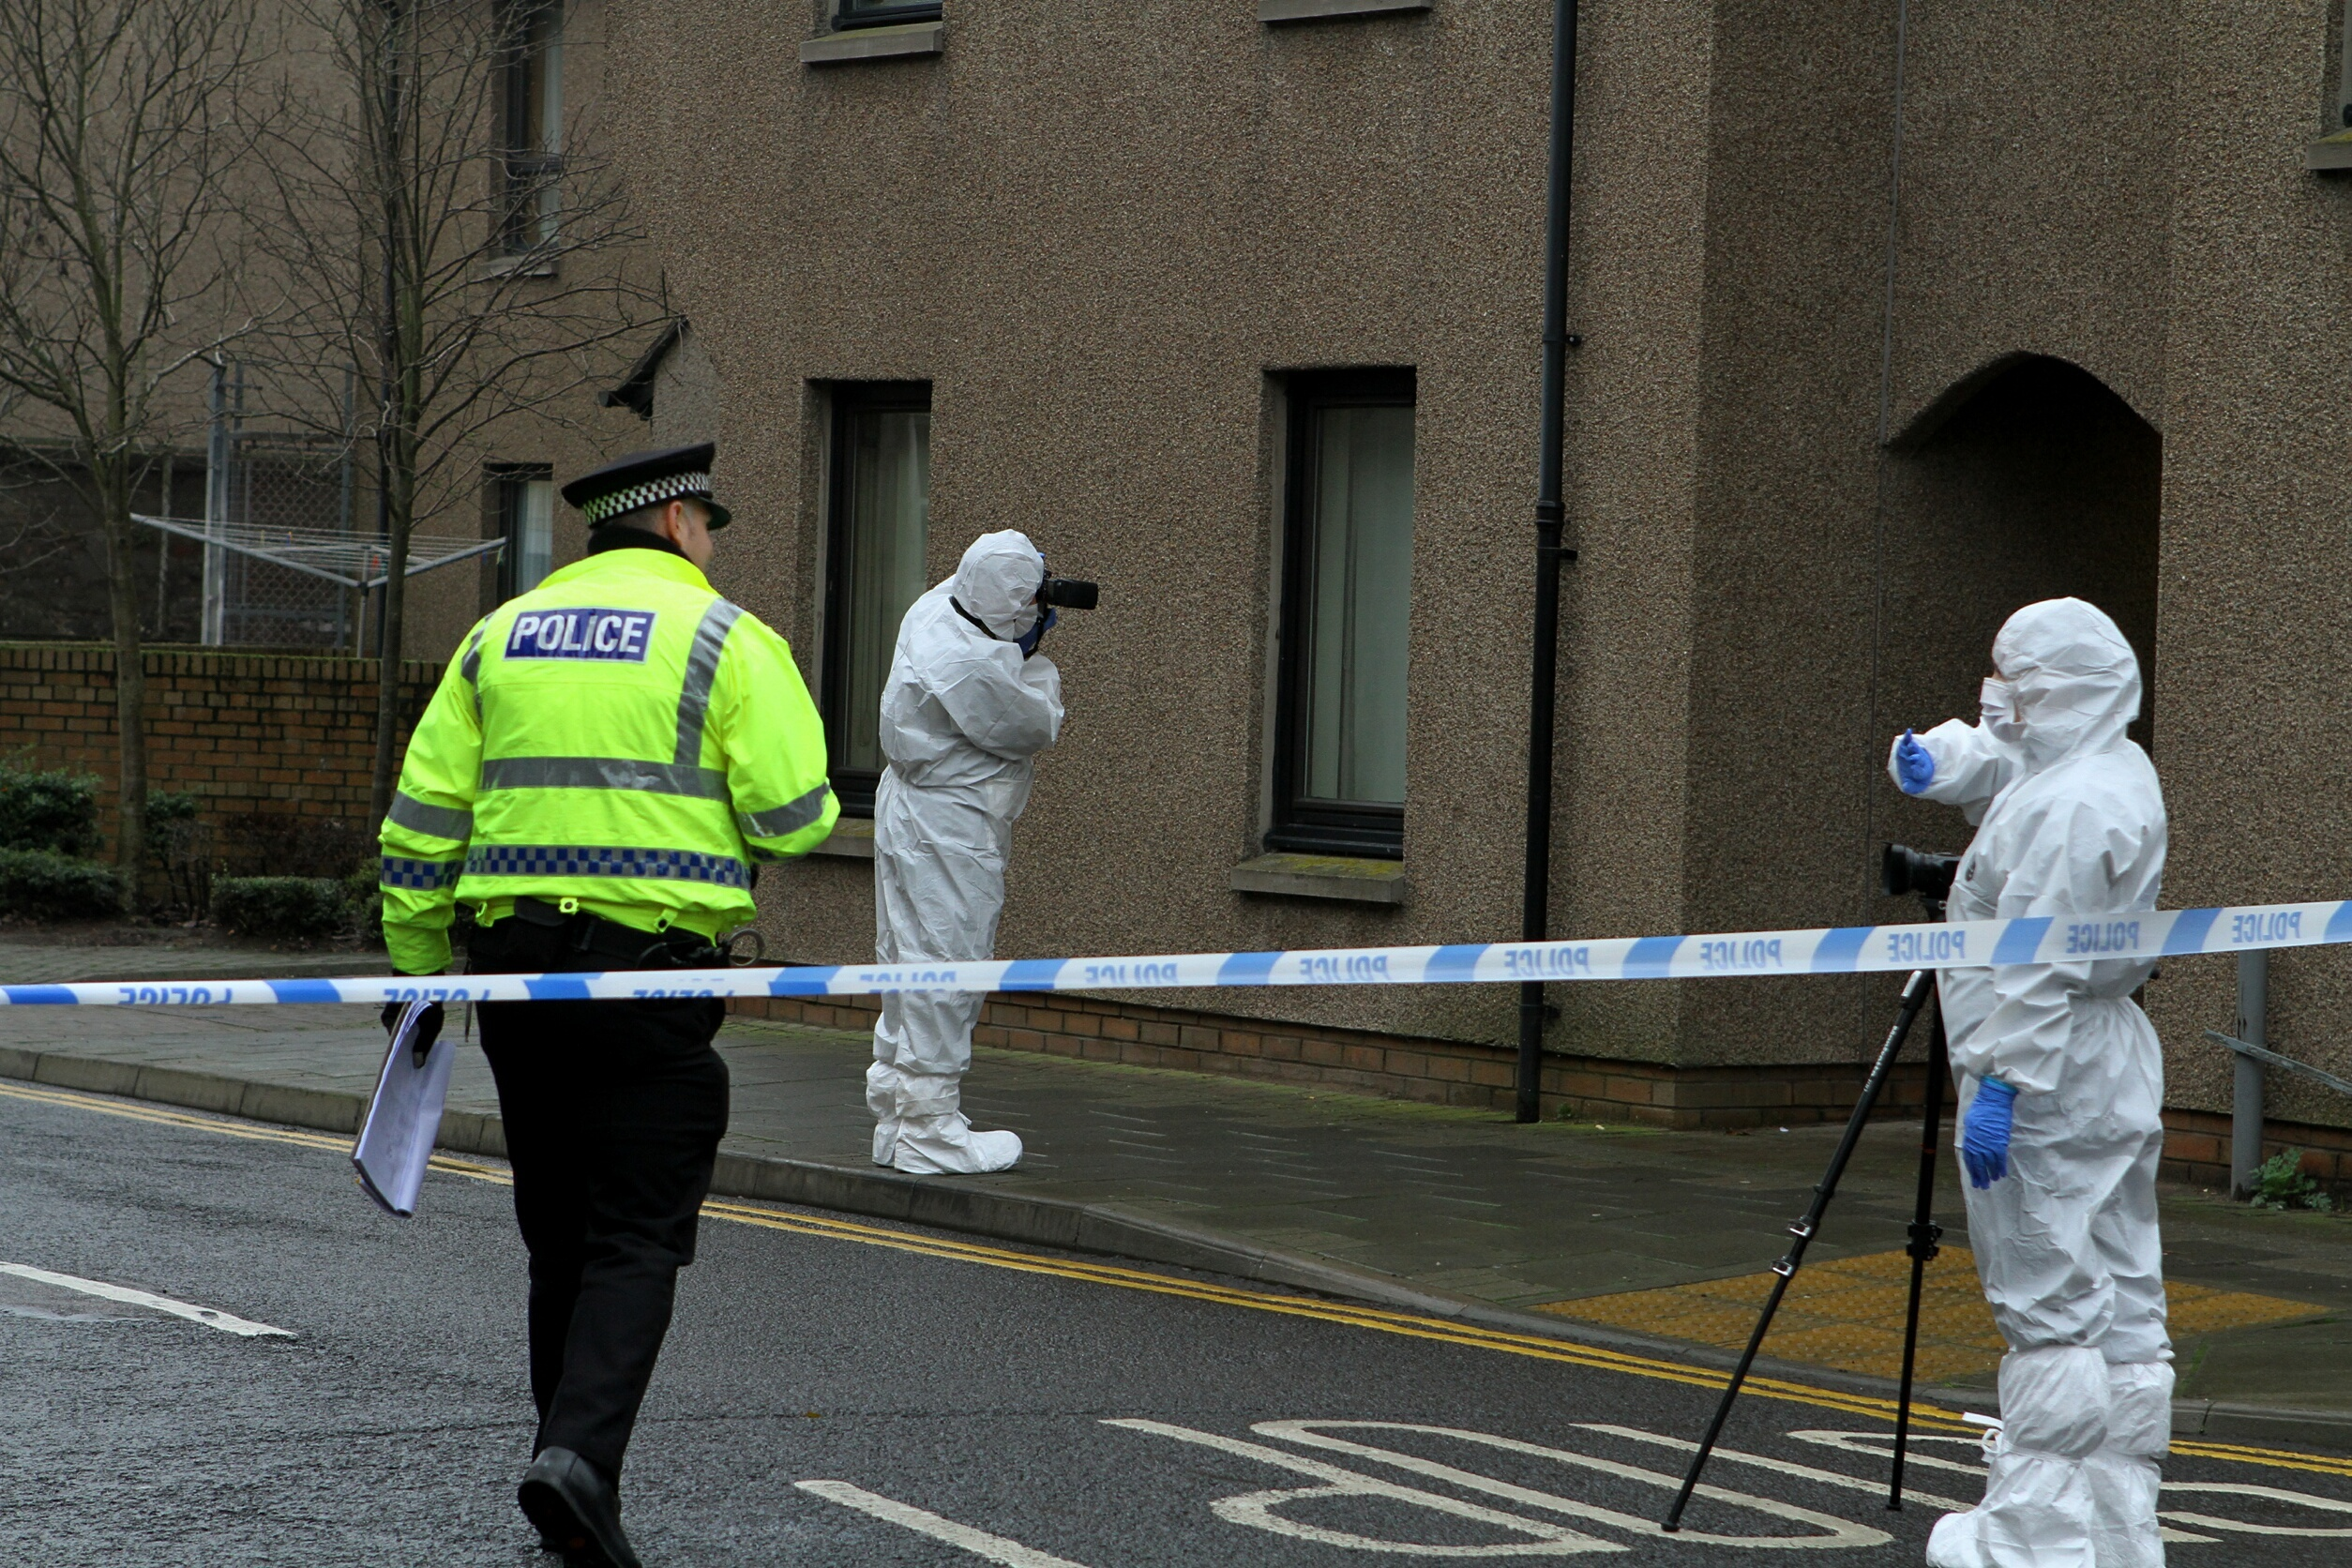 COURIER, DOUGIE NICOLSON, 05/11/15, NEWS. MONTOSE MURDER. Pic shows police activity in the Market Street/John Street area of Montrose today, Thursday 5th November 2015.